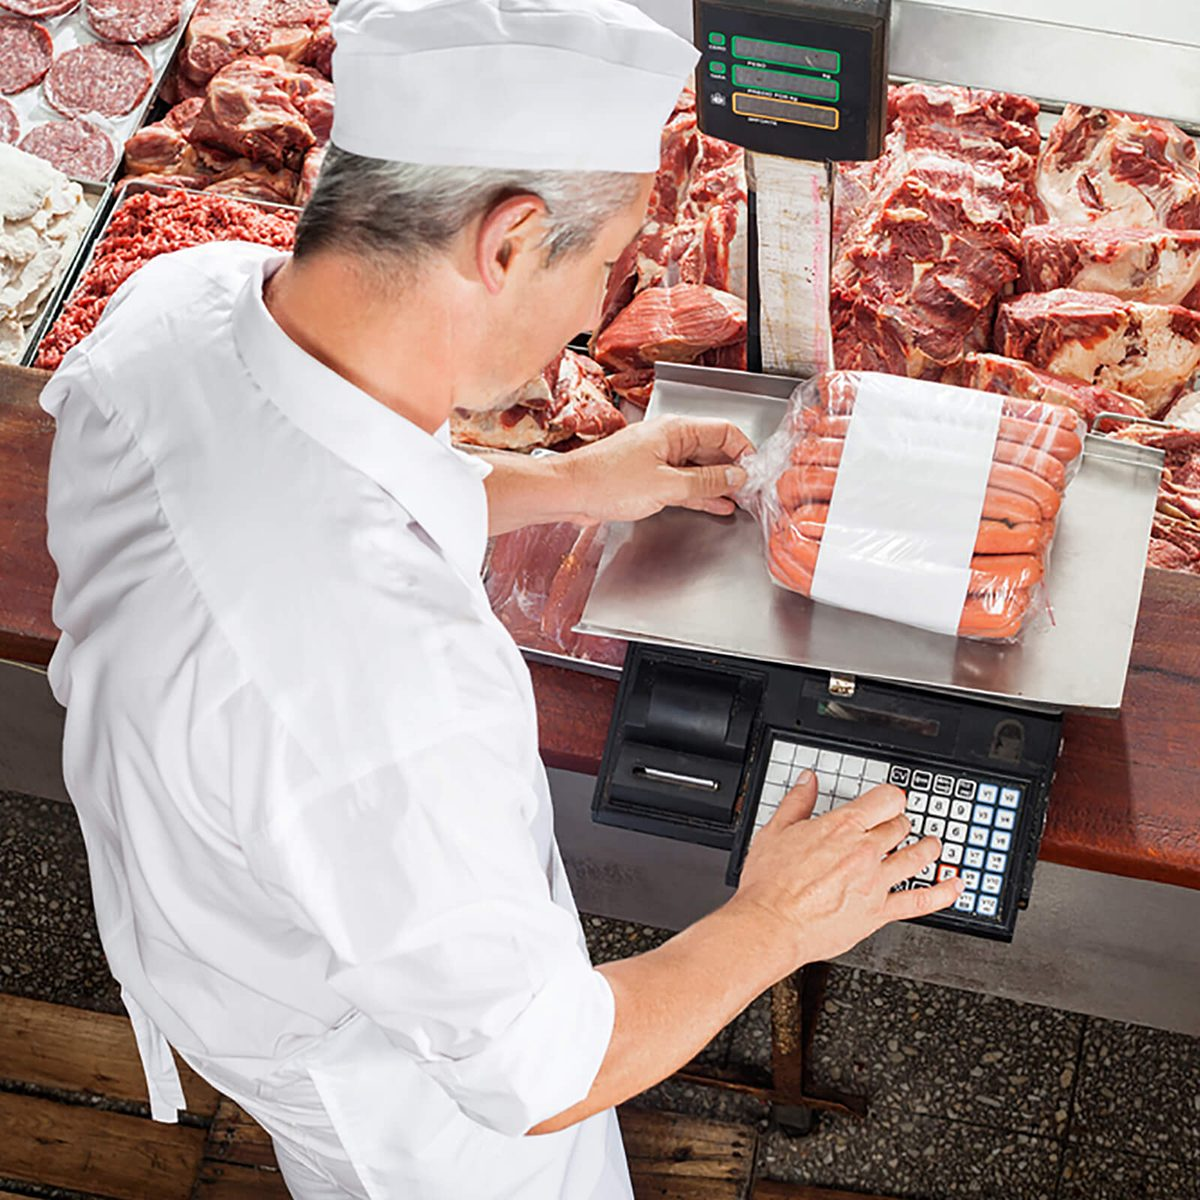 High angle view of male butcher weighing sausages at display cabinet in butchery; Shutterstock ID 242663593